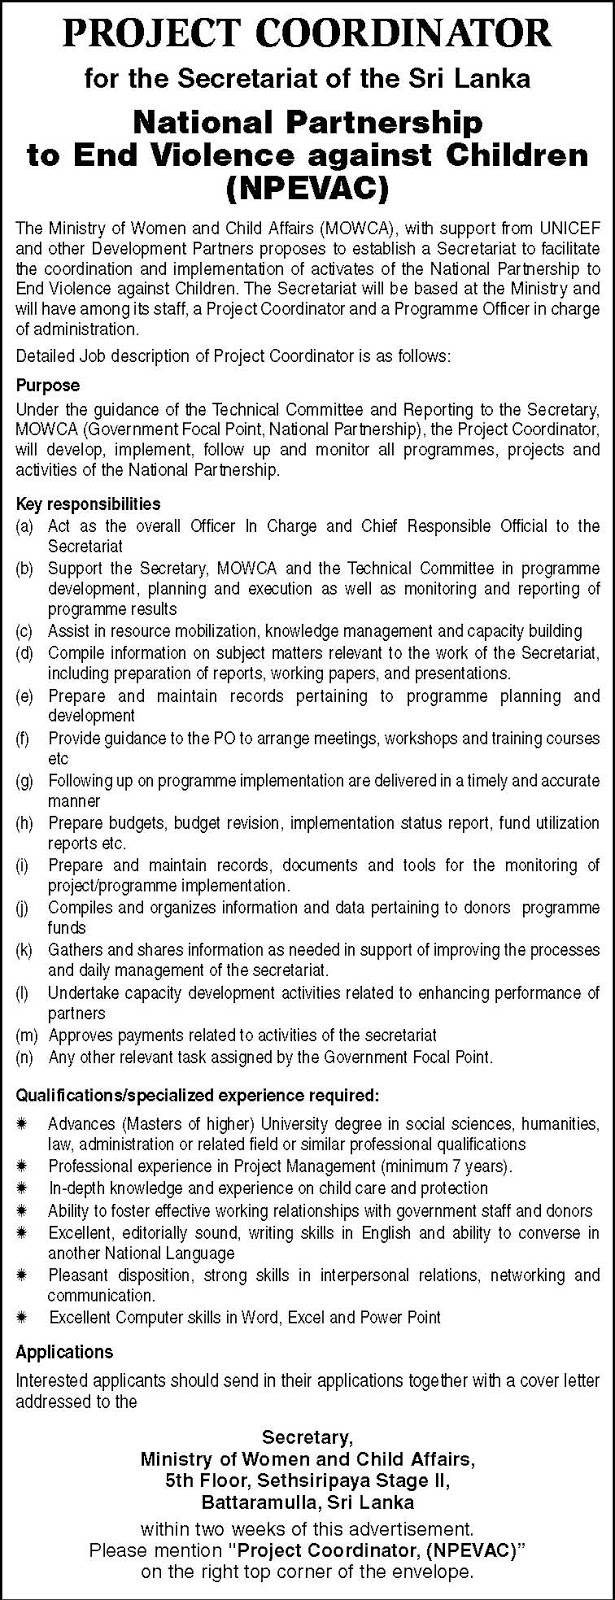 Sri Lankan Government Job Vacancies at Ministry of Women & Child Affairs for Project Coordinators